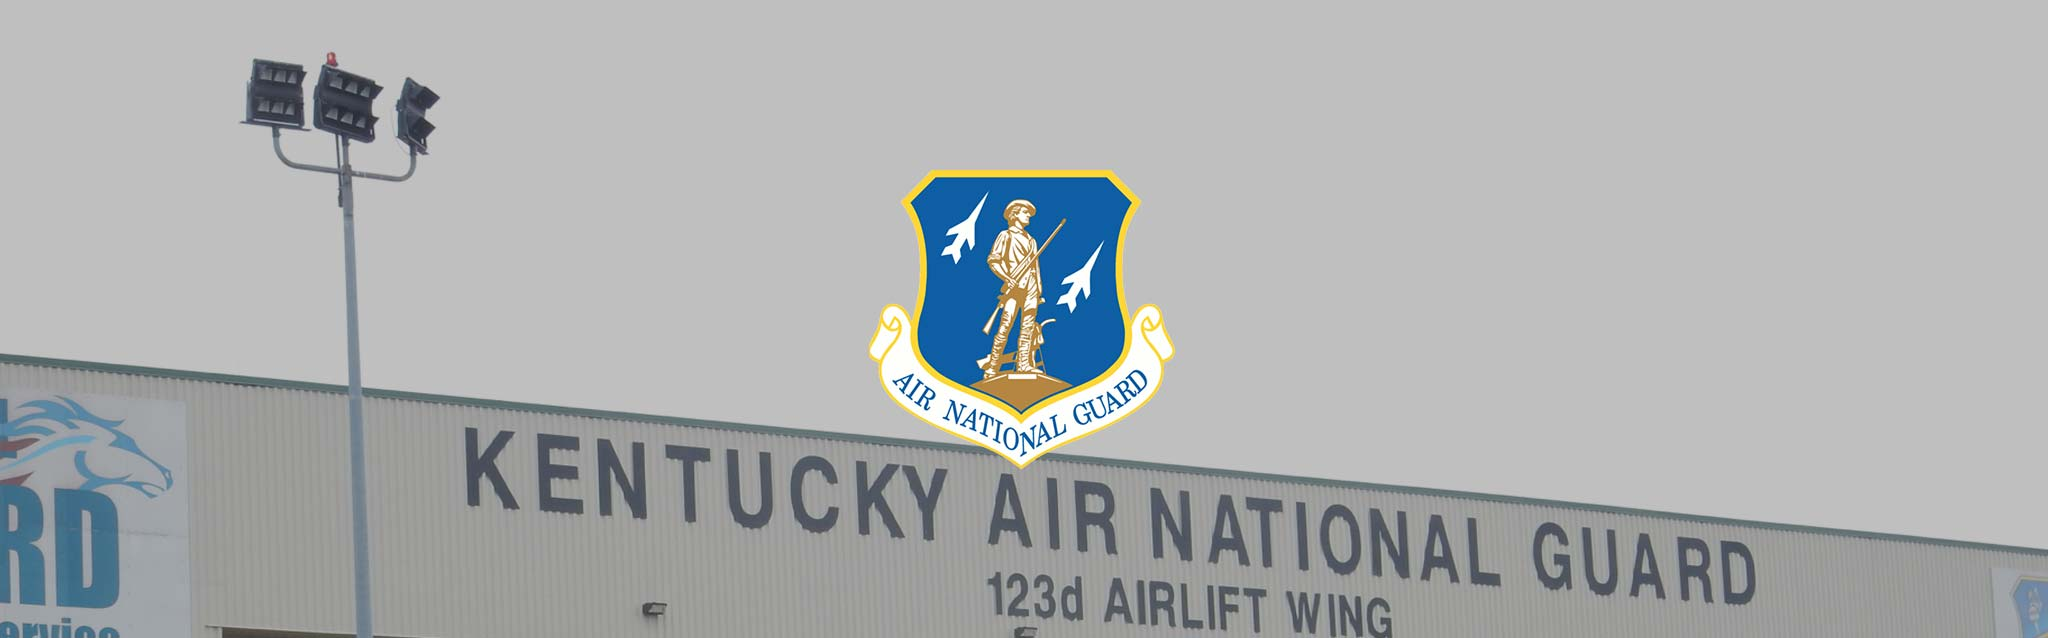 Kentucky-Air-National-Guard1